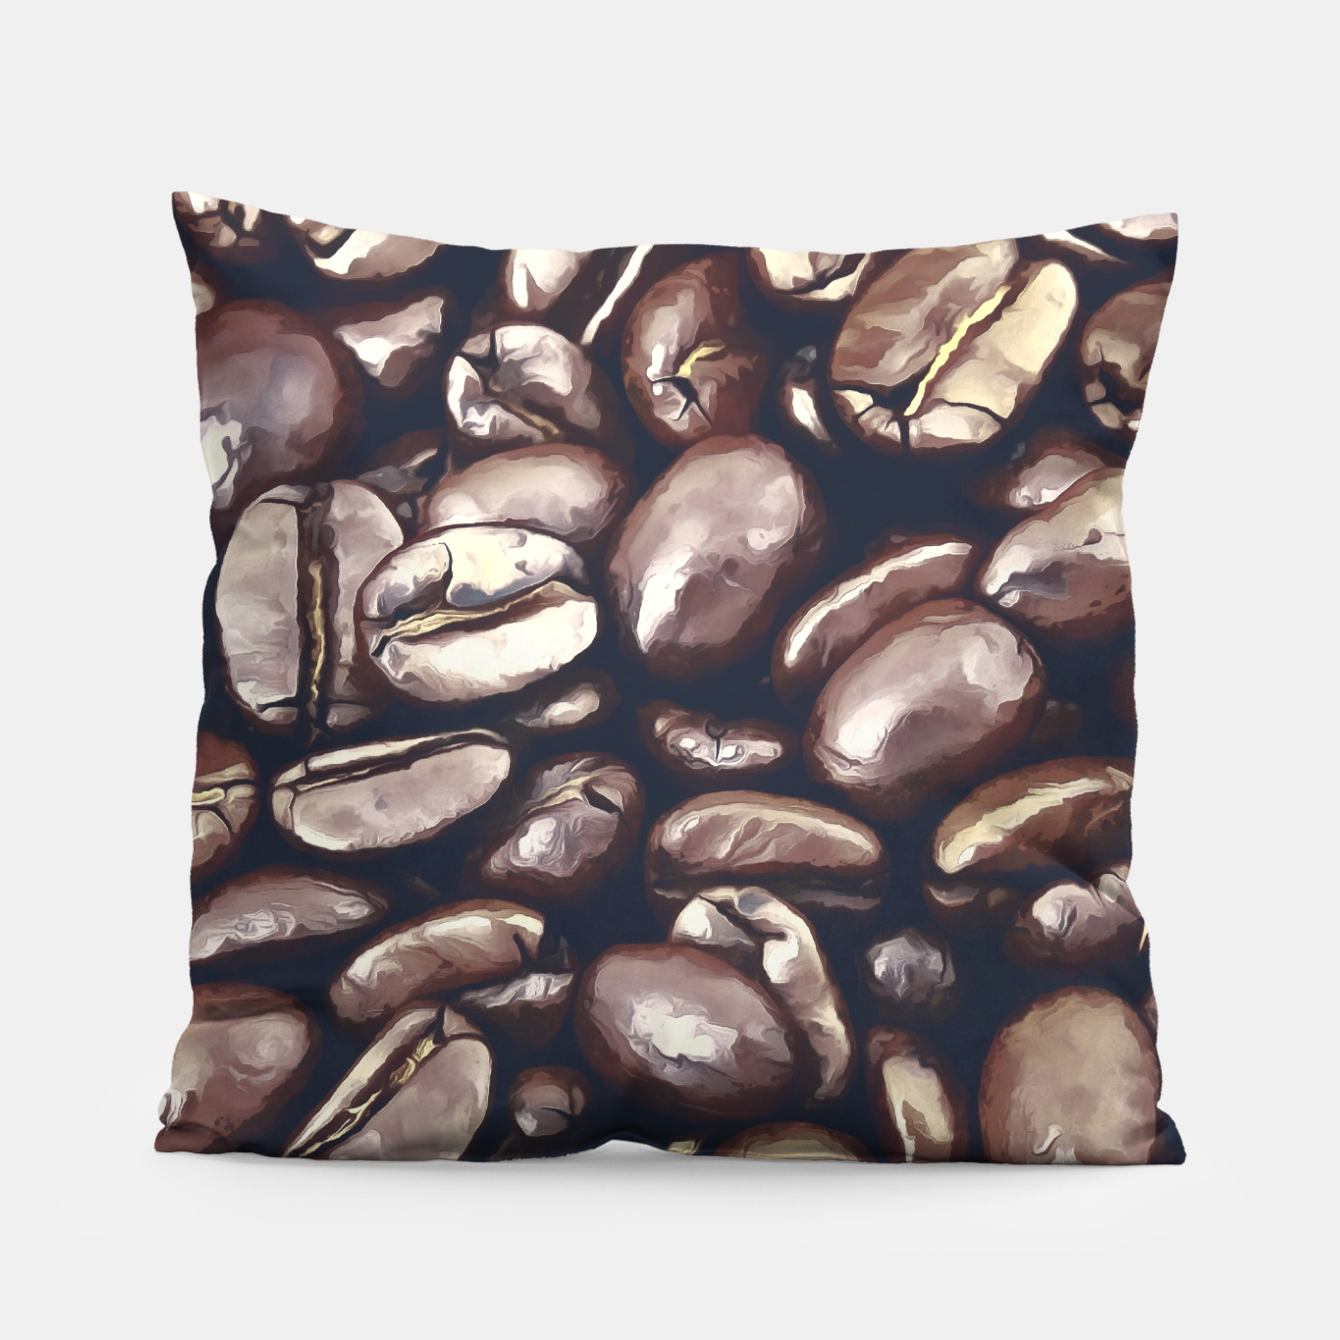 Image de roasted coffee beans texture acrfn Pillow - Live Heroes